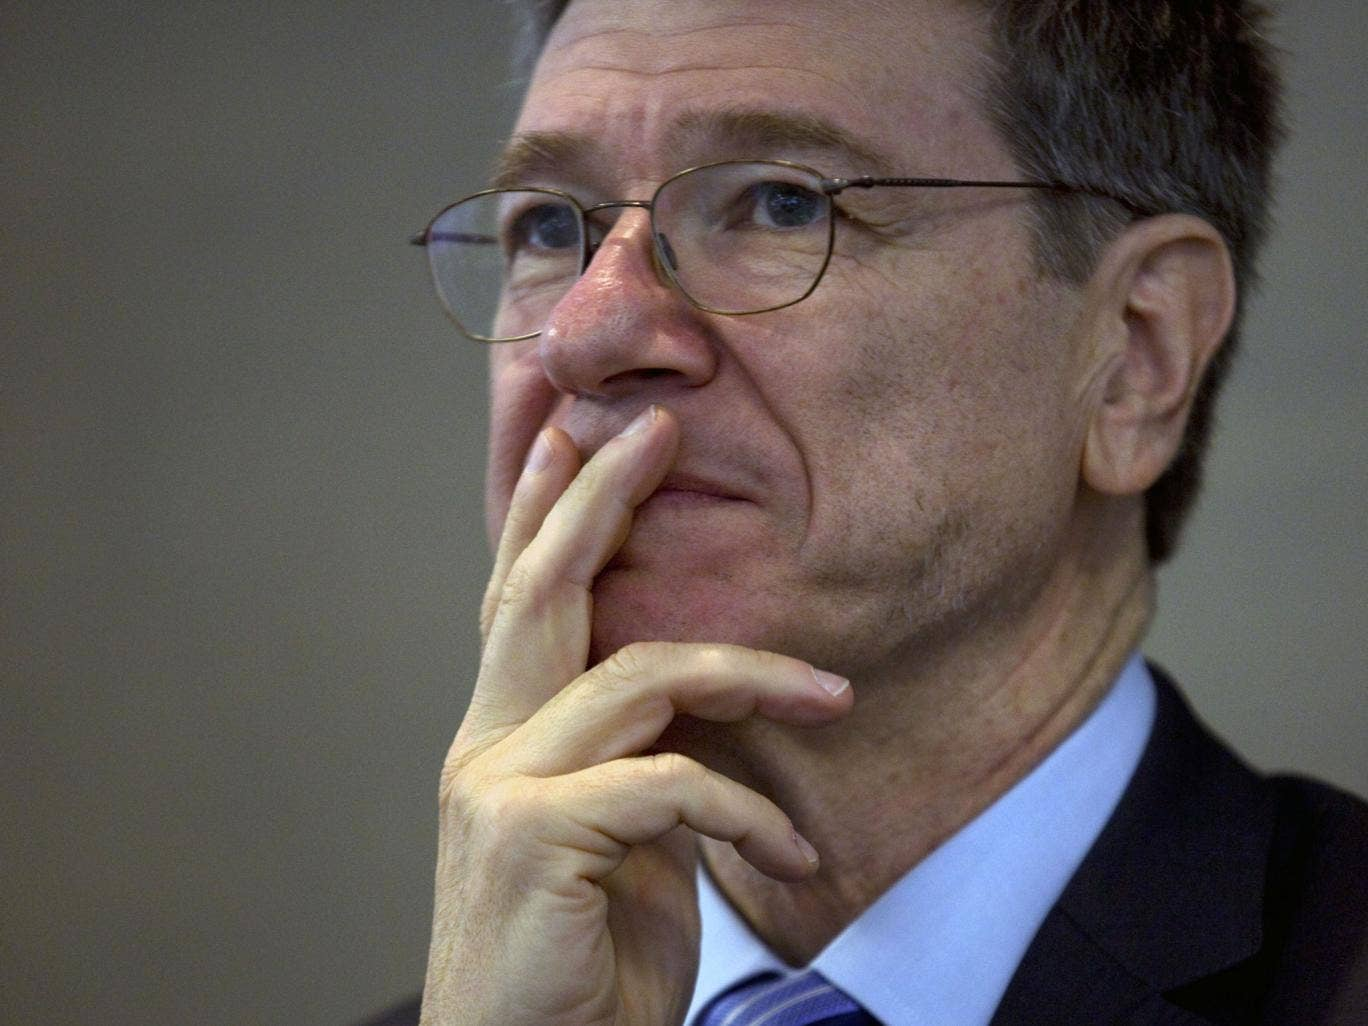 The economist Jeffrey Sachs launched a stinging attack on the culture of Wall St